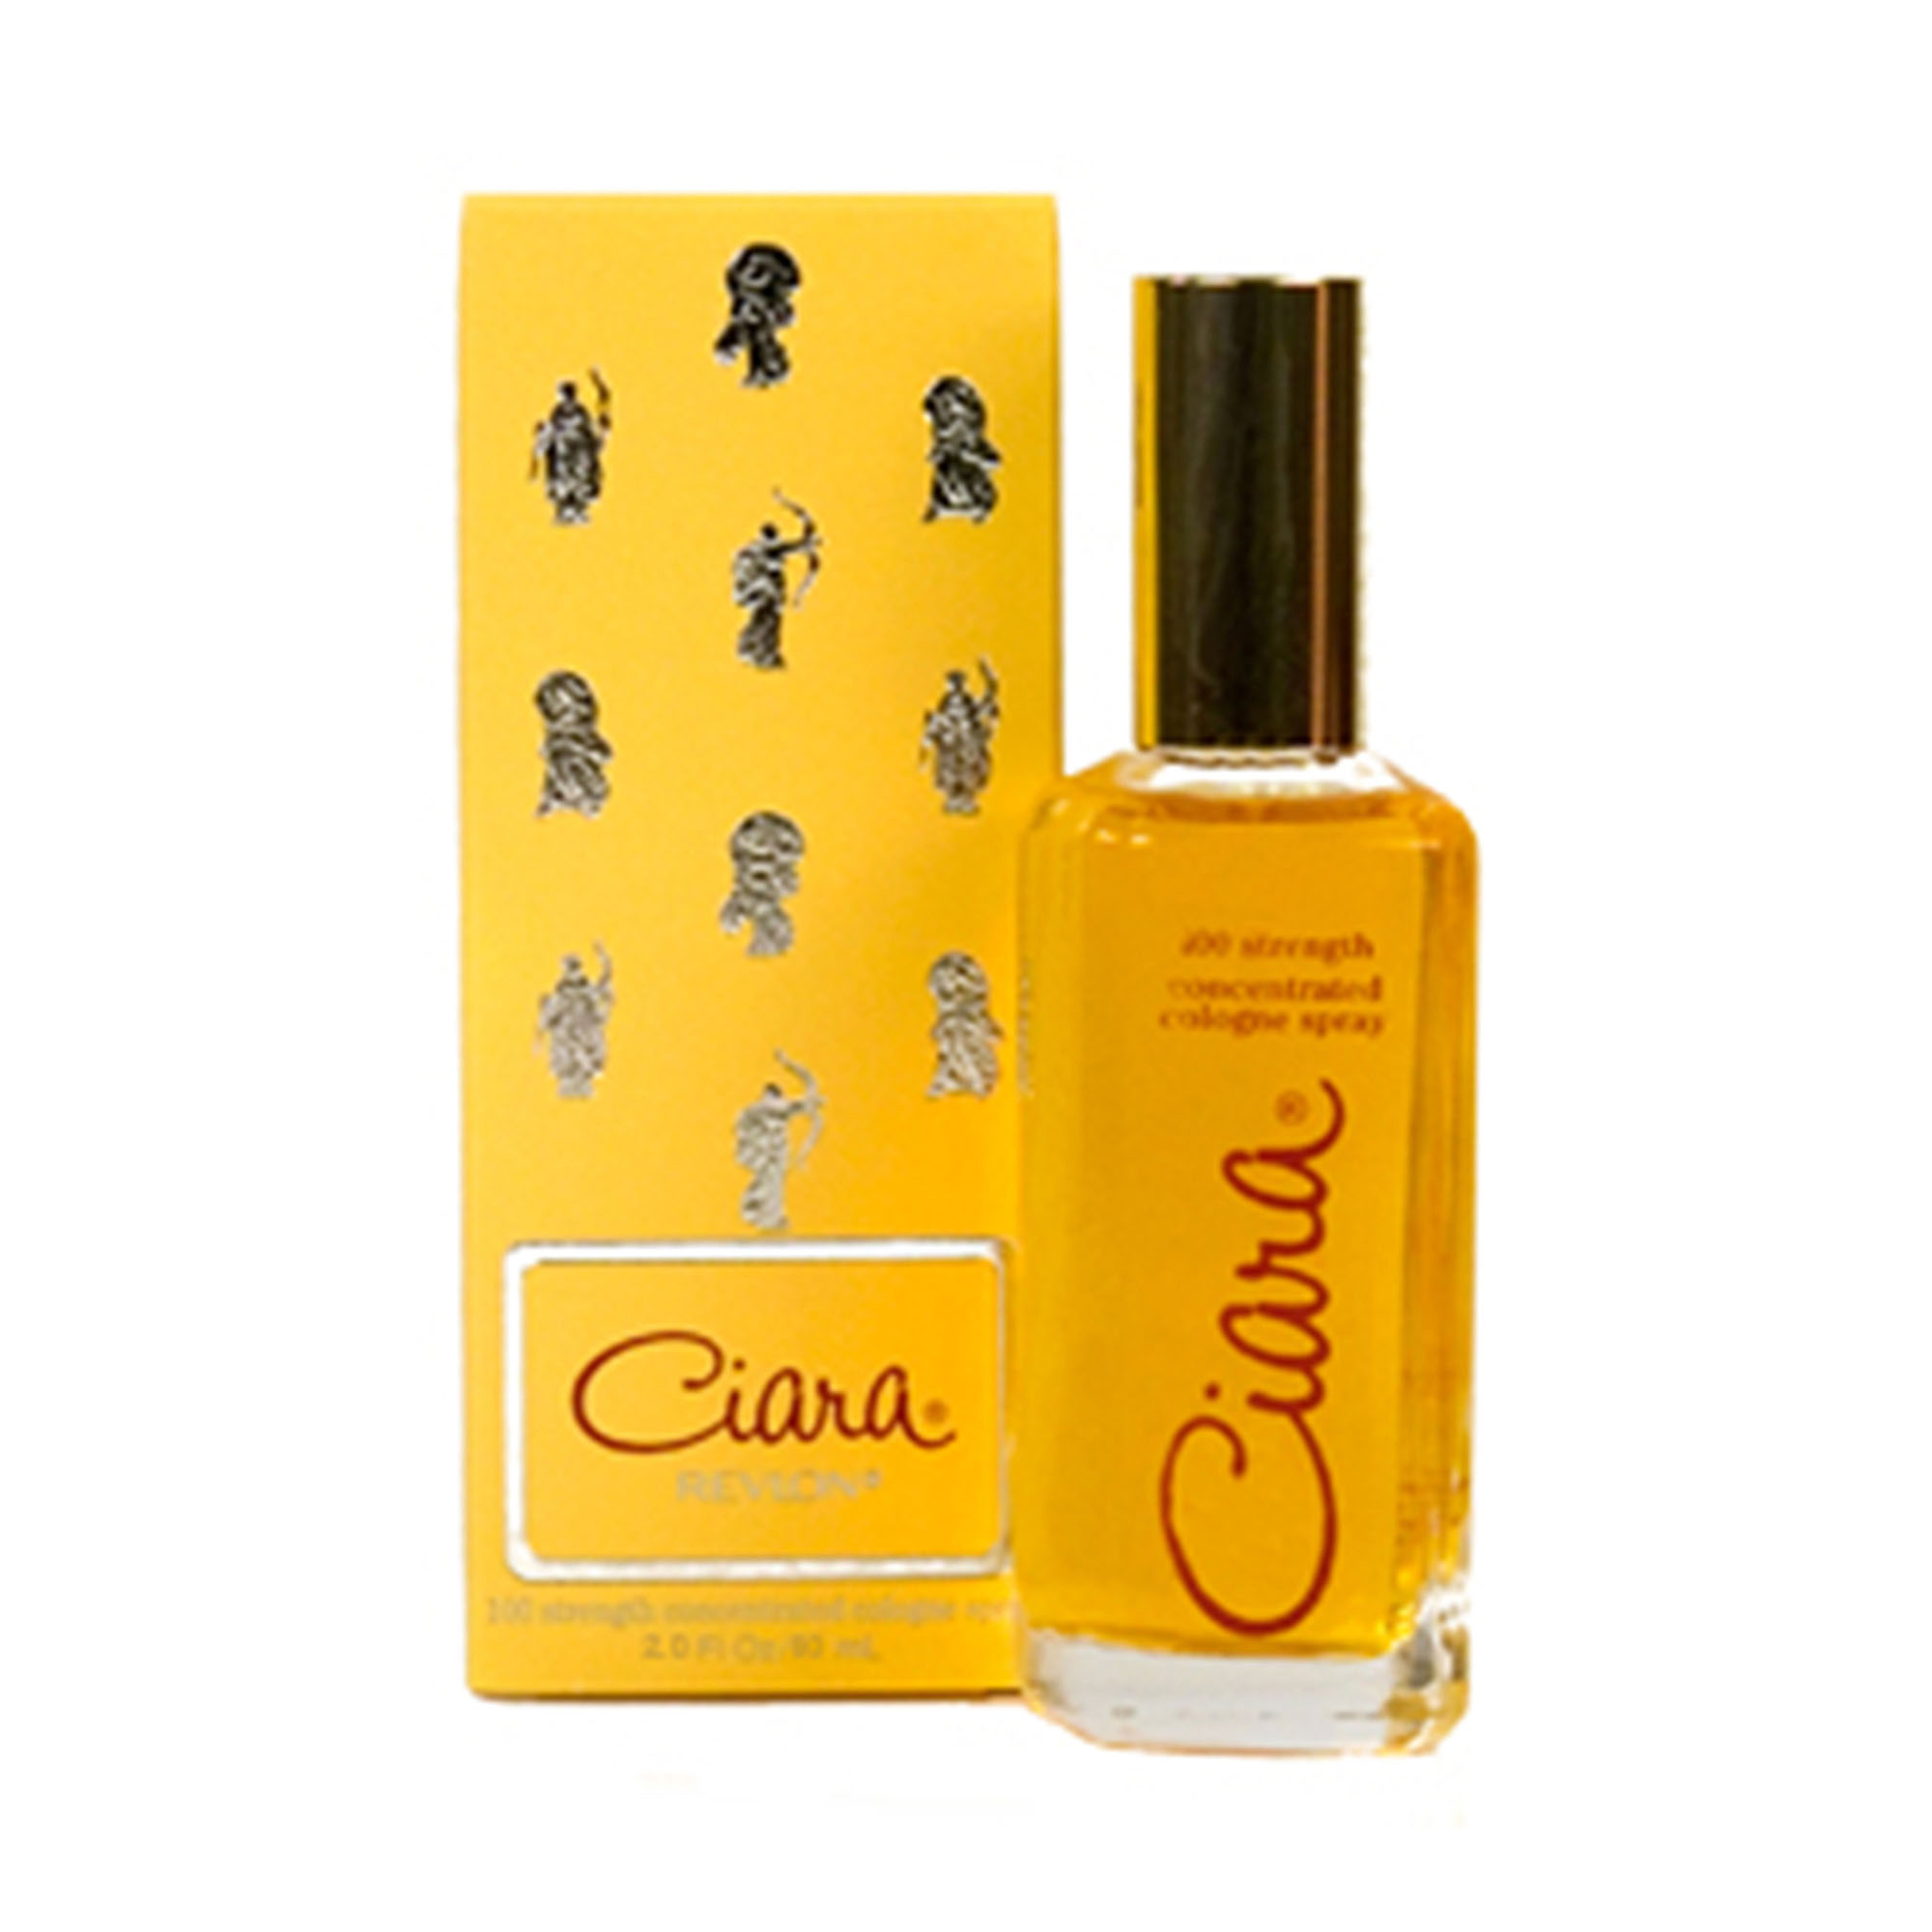 Ciara 80 For Women 2.3 oz Cologne Spray By Ciara